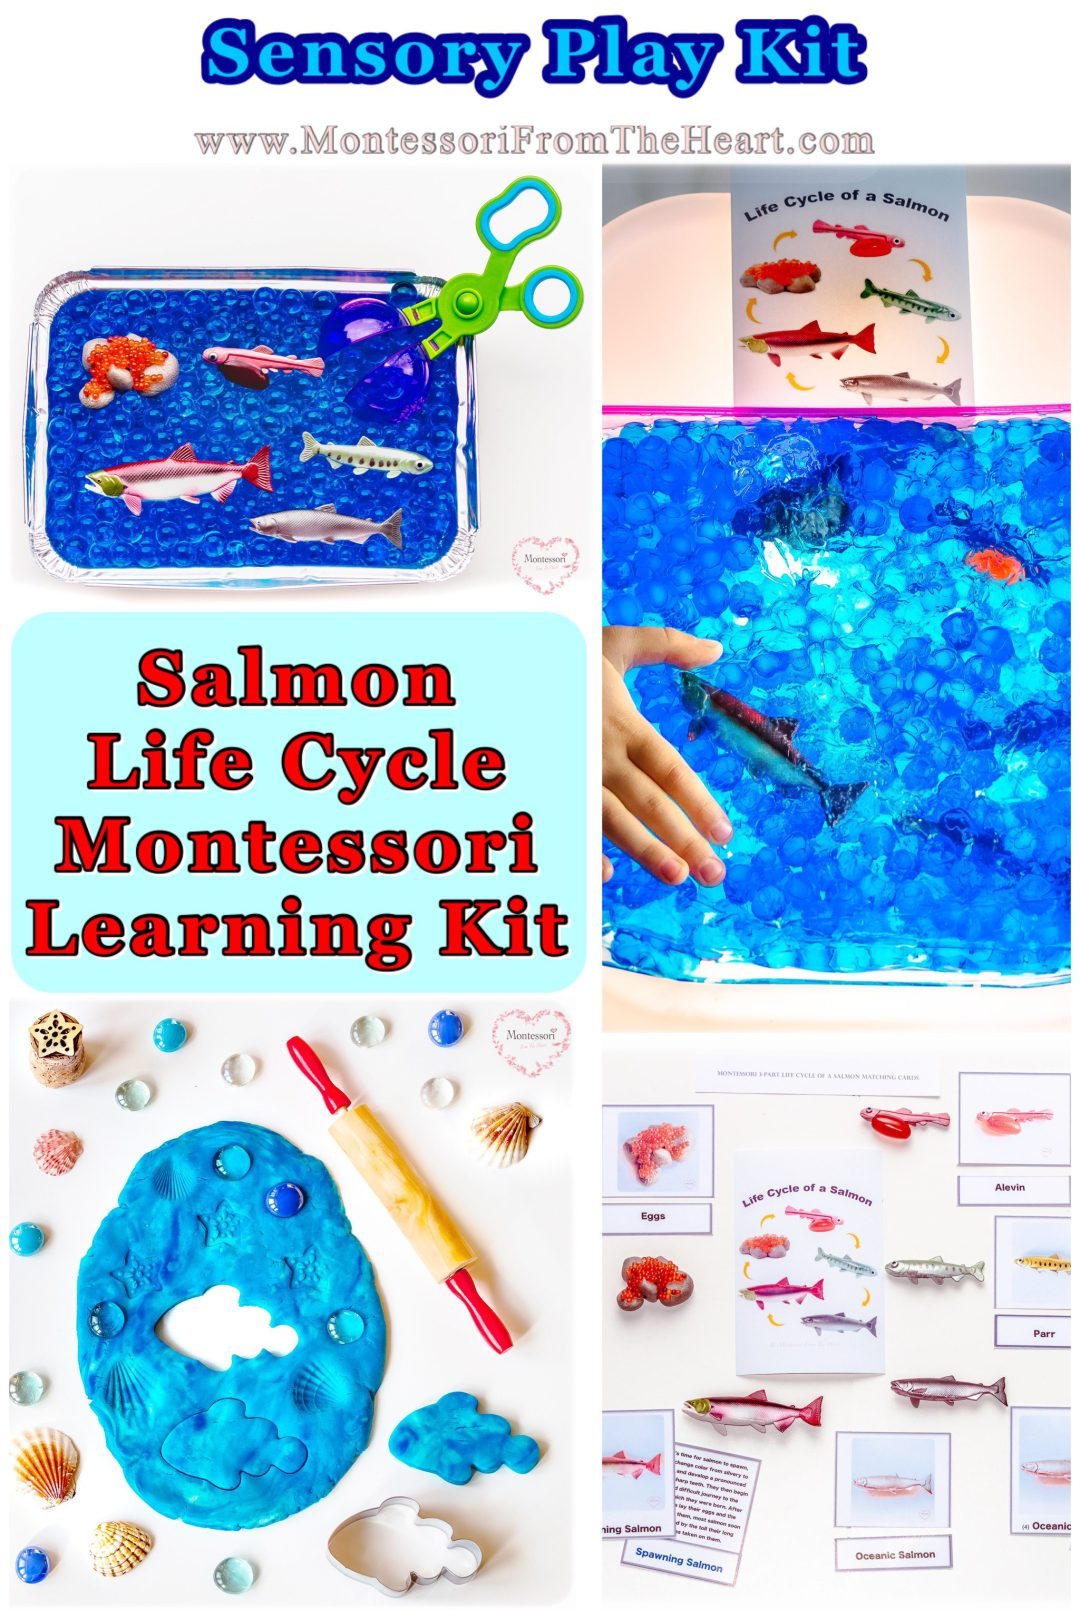 Salmon-LifeCycle-Sensory-Learning-Kit